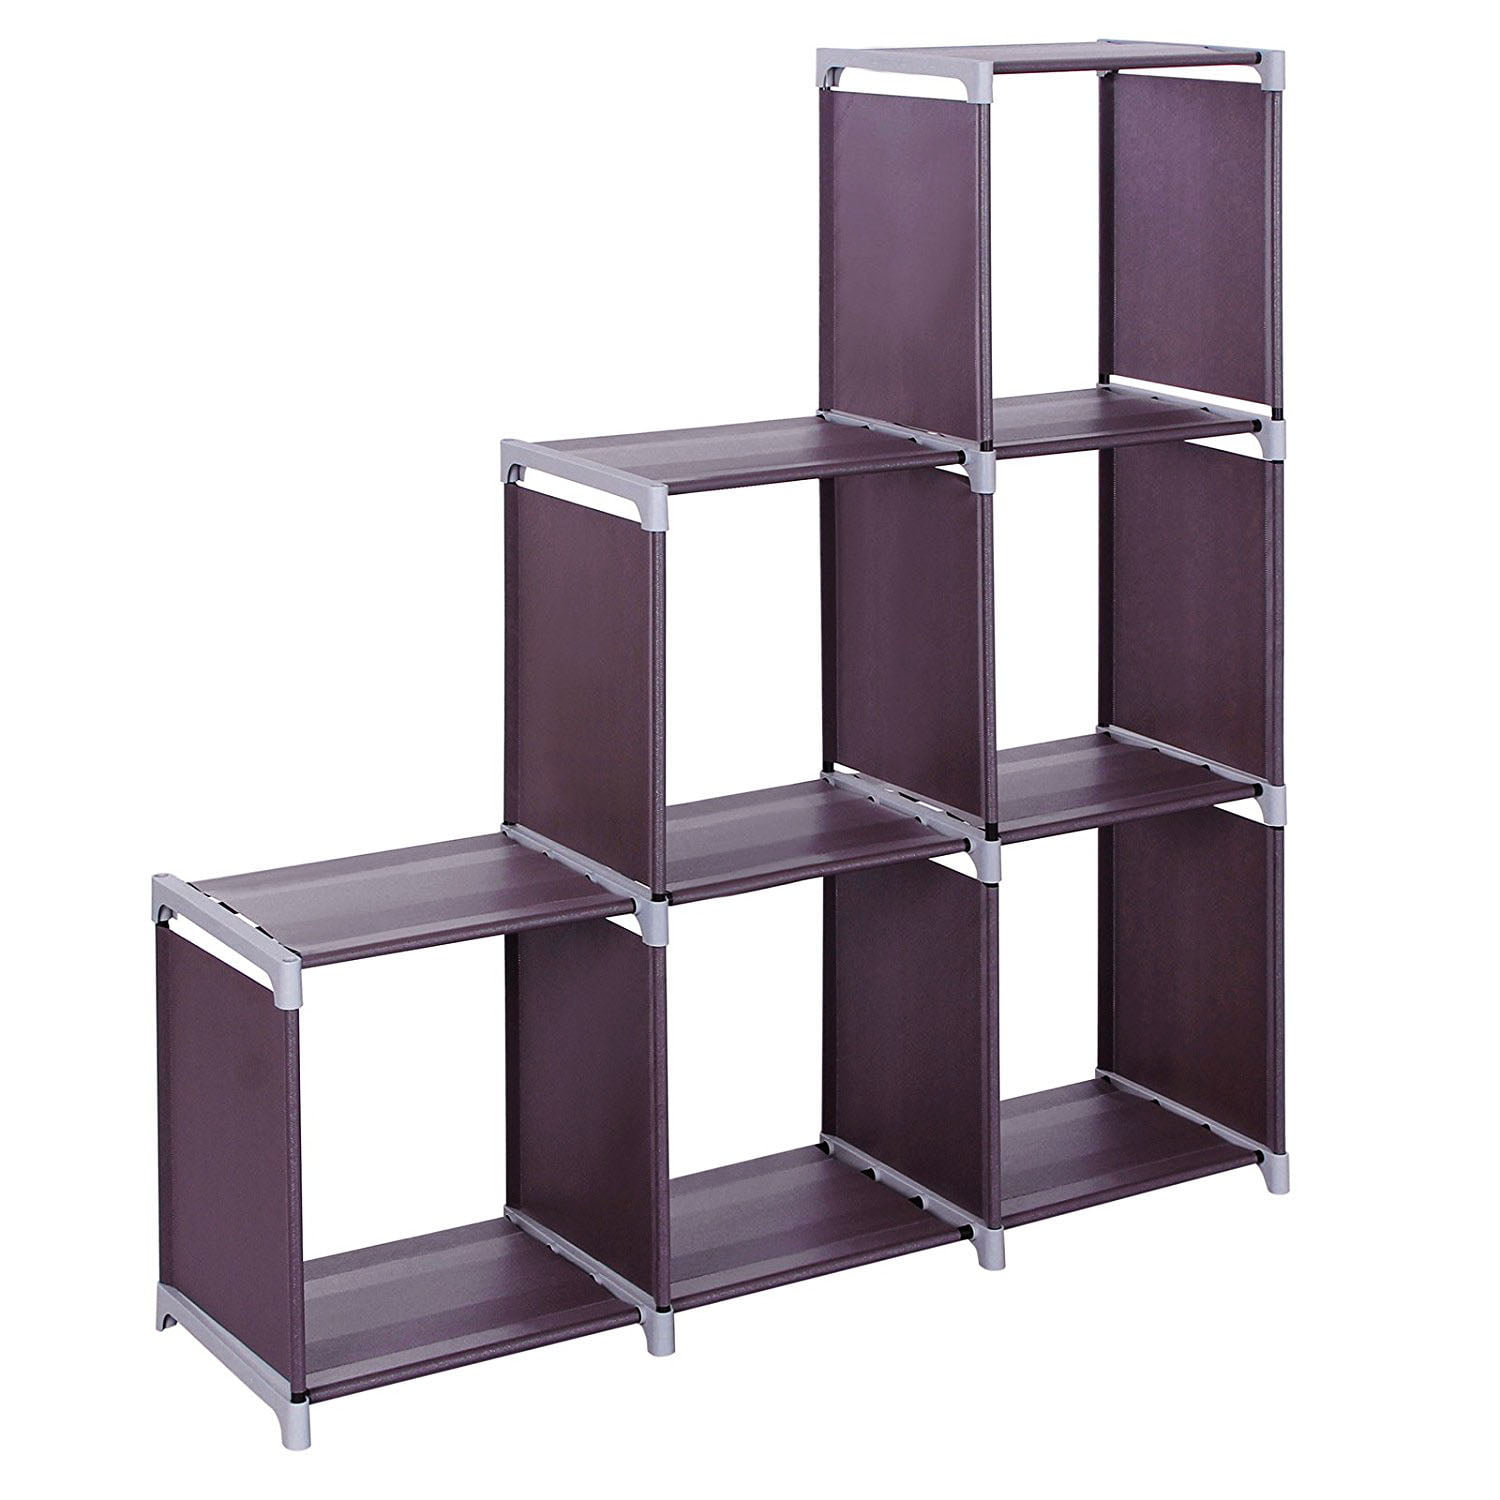 Superieur Veryke 3 Tiers Storage Cubes, 9 Cubes Storage Shelf Organizers, Book Shelf  Cube Storage Shelf For Clothes, Bookcase Plastic Storage Cabinets For ...